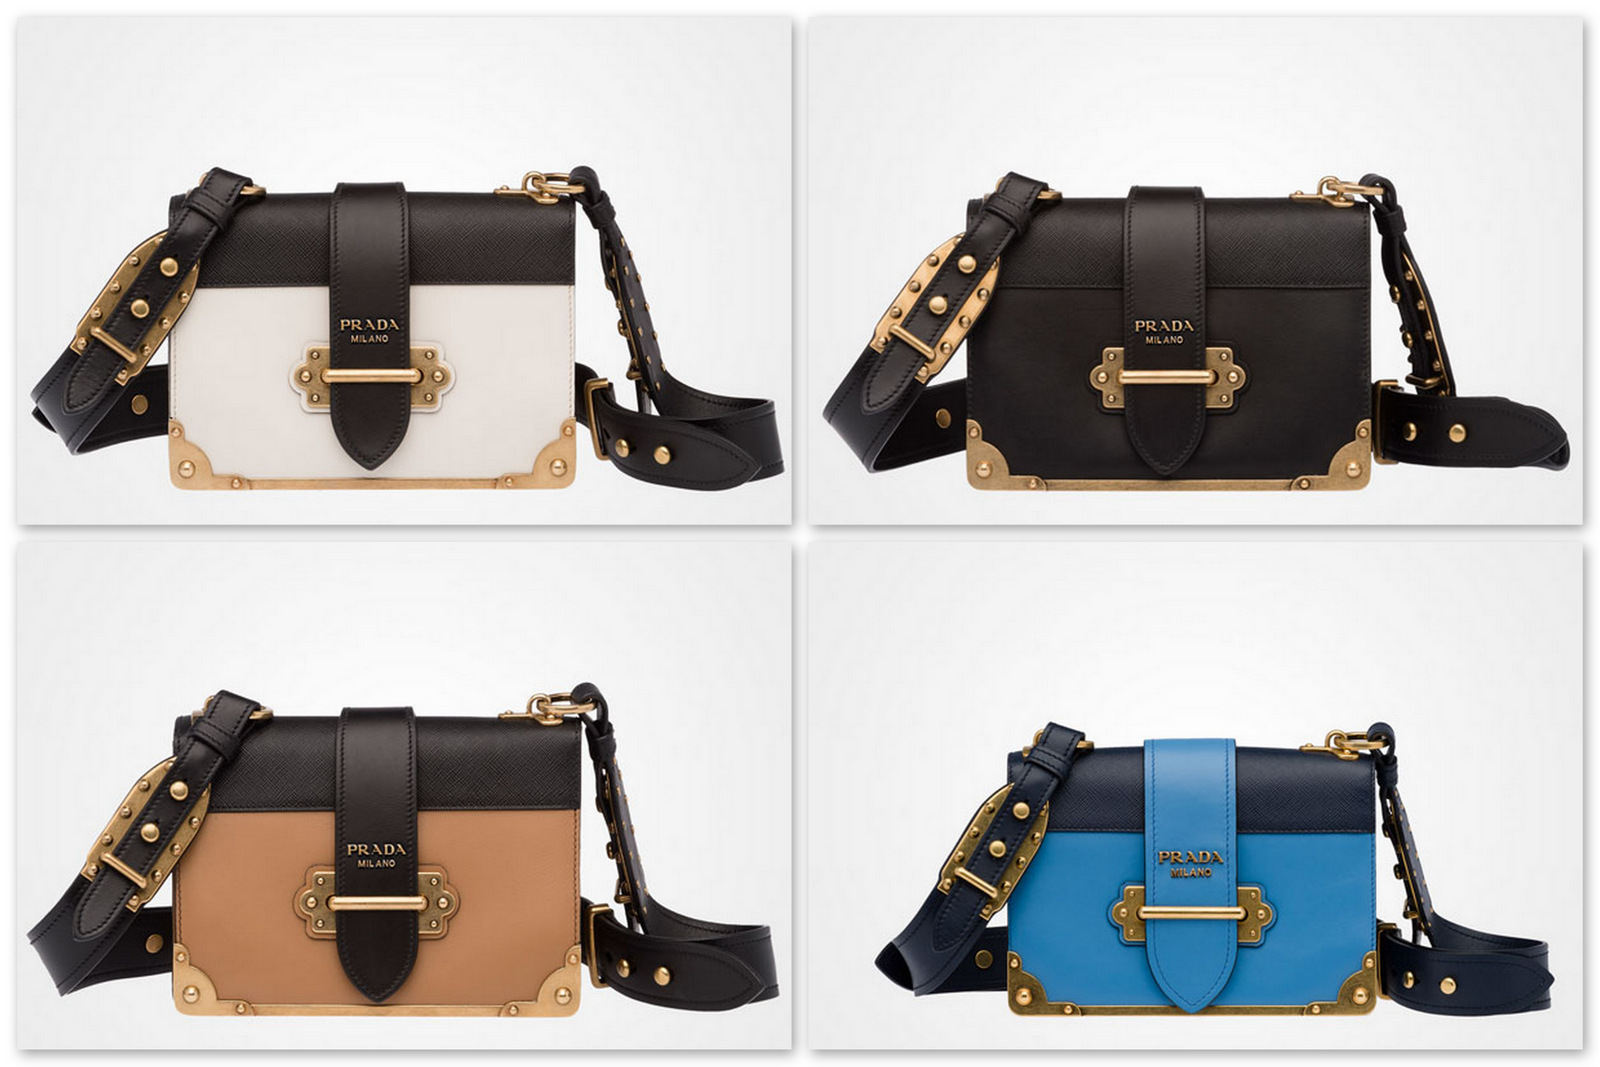 164525622d99 Prada Cahier Bag Review | Stanford Center for Opportunity Policy in ...